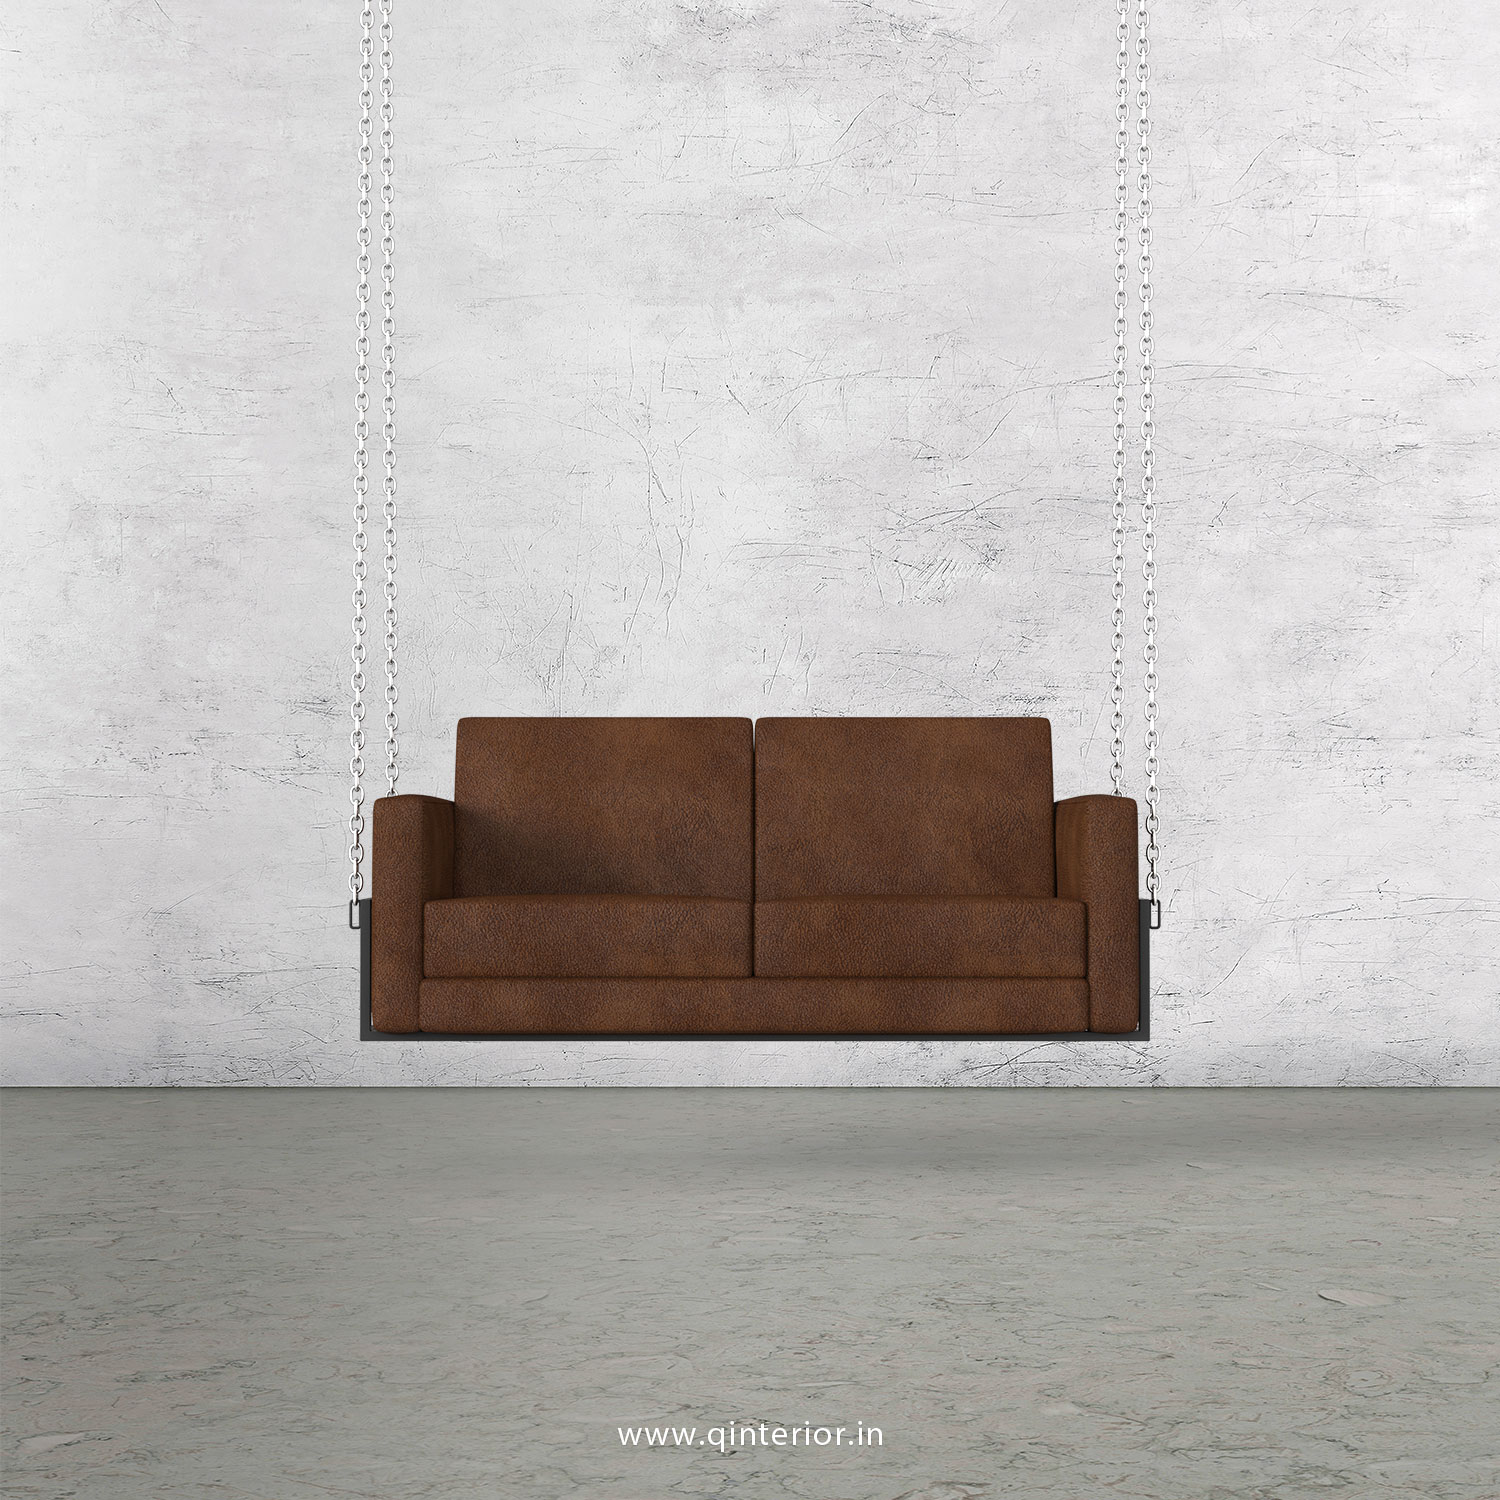 NIRVANA 2 Seater Swing Sofa in Fab Leather Fabric - SSF001 FL09